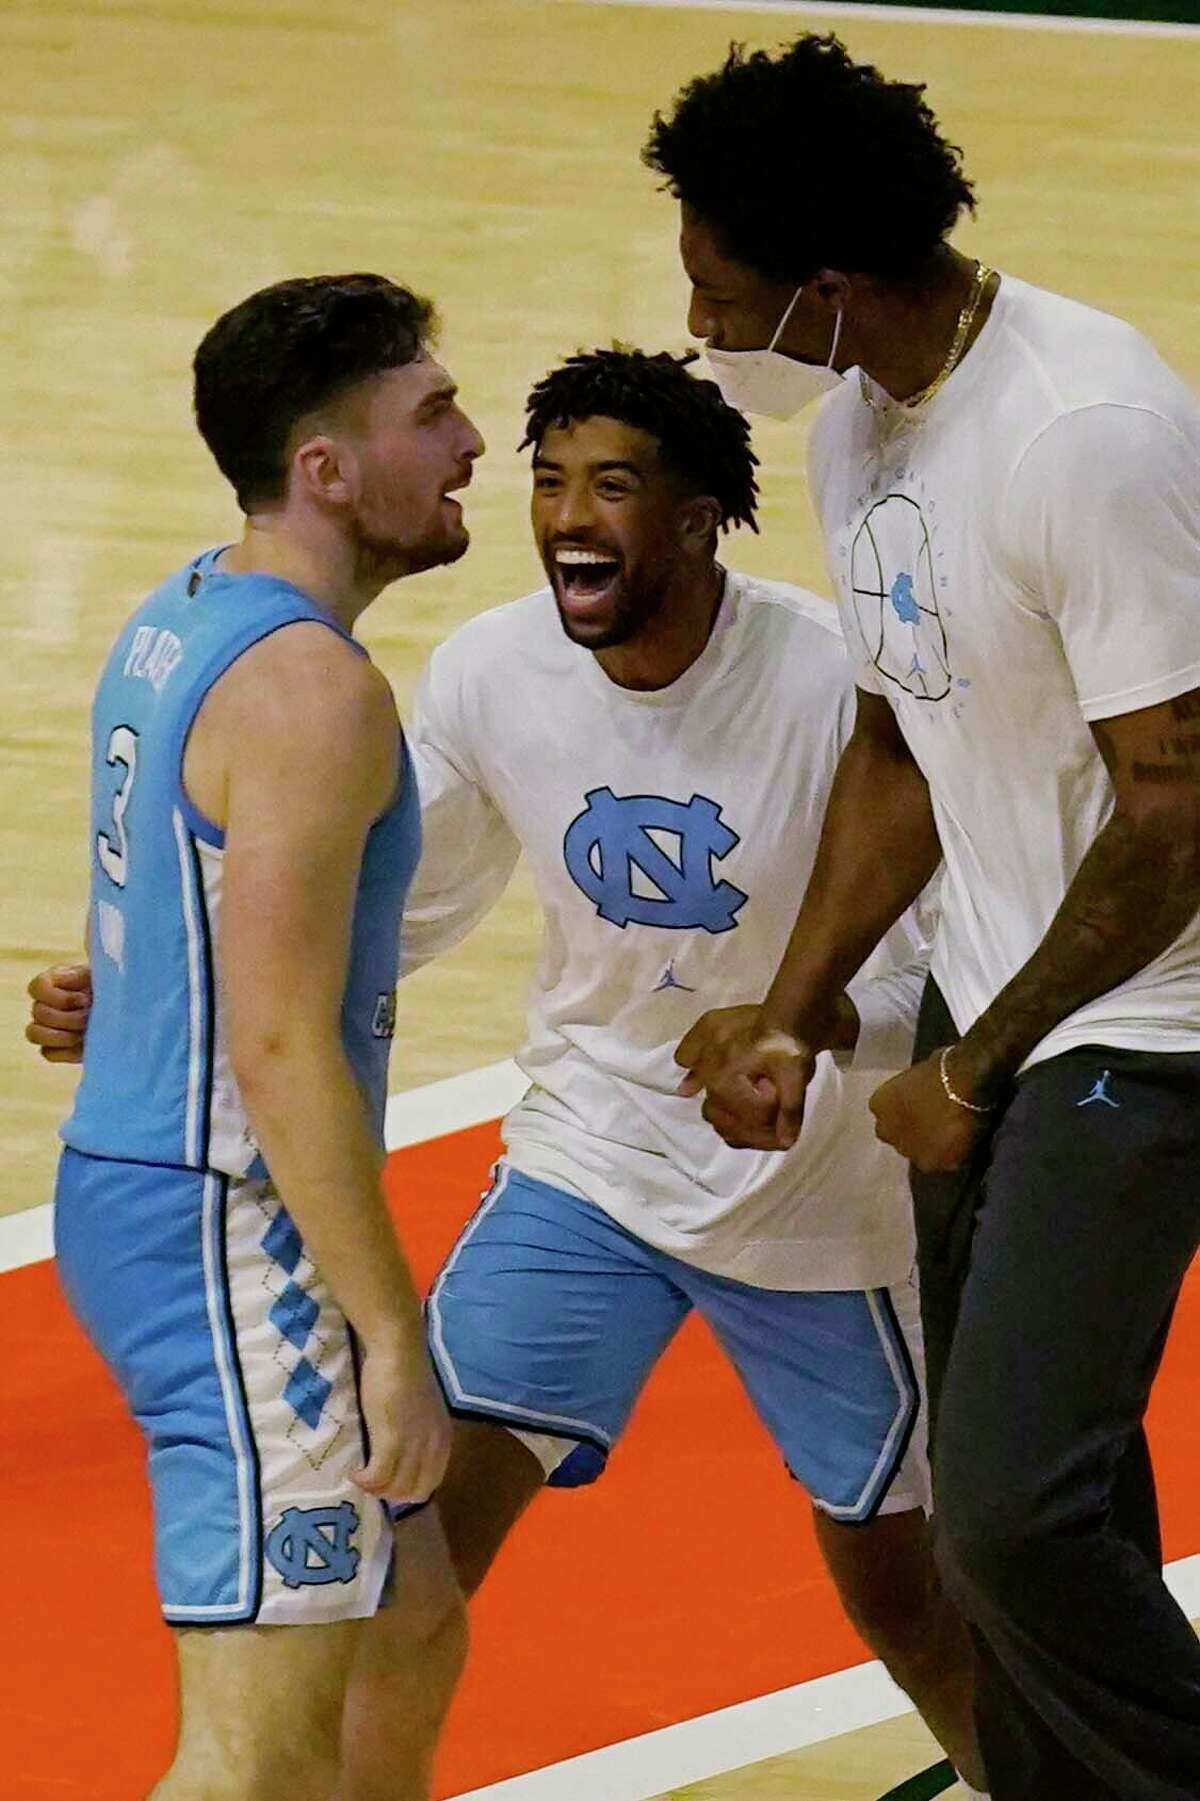 Teammates congratulate guard Andrew Platek (3) after he scored the winning basket during the second half of an NCAA college basketball game against Miami, Tuesday, Jan. 5, 2021, in Coral Gables, Fla. North Carolina defeated Miami 67-65.